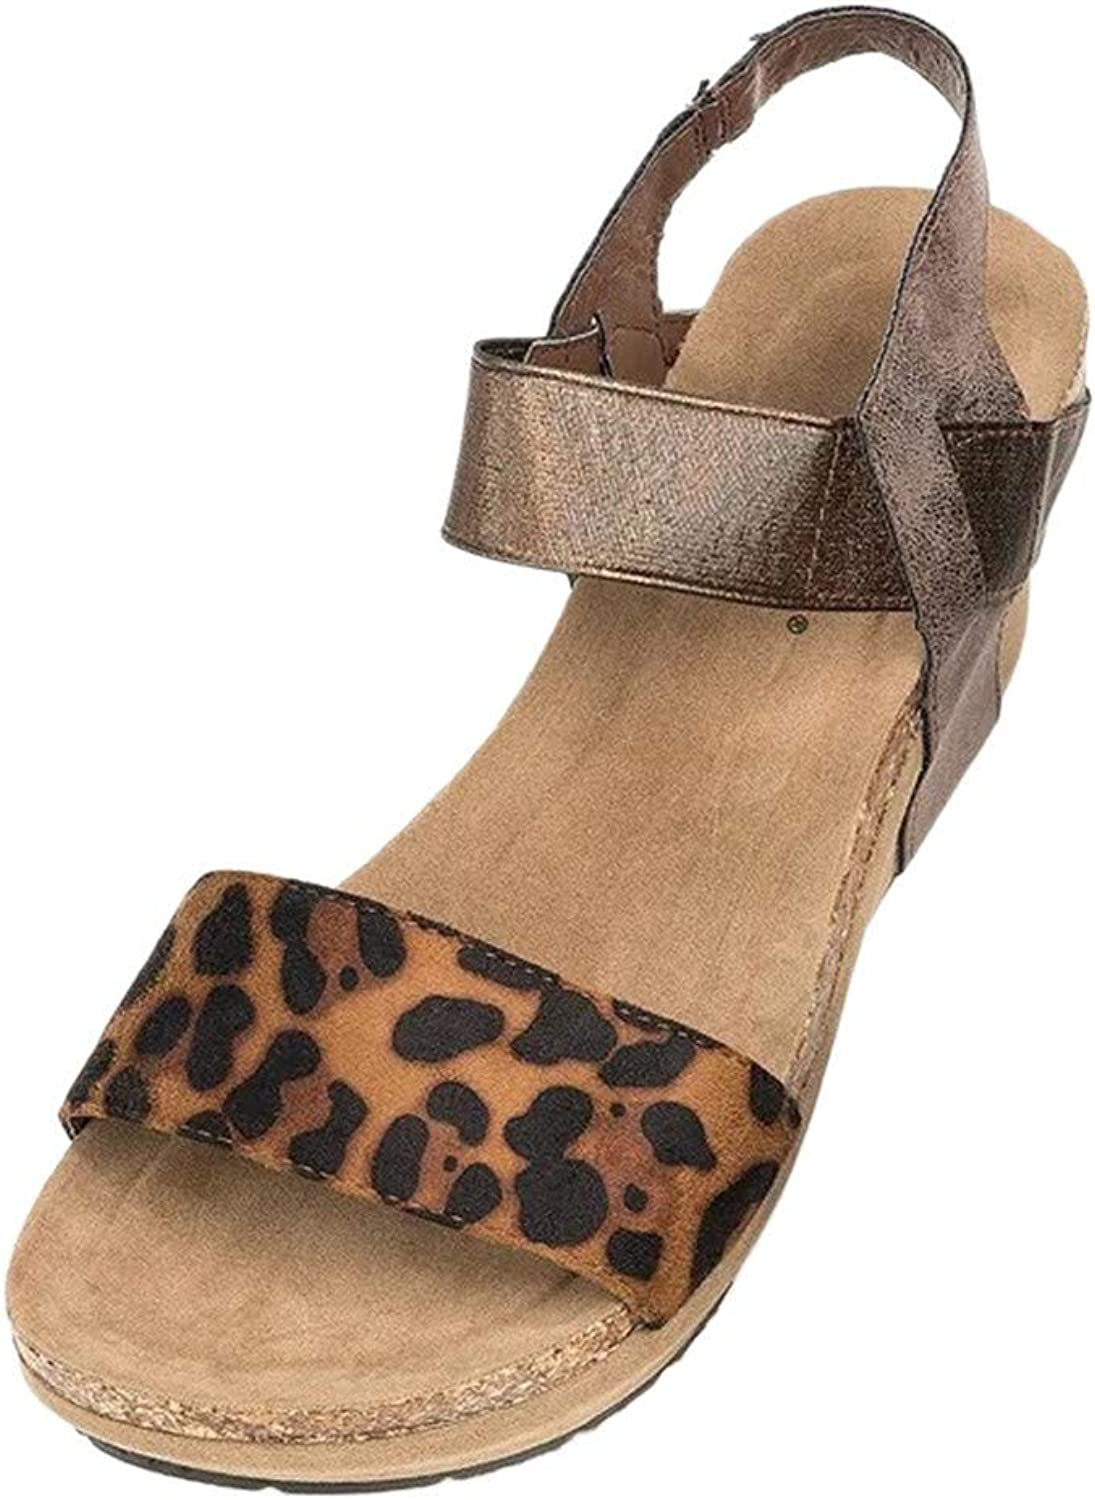 Sandals for Women THENLIAN Platform shoes Leopard Open Toe Strappy Wedge Leather Roman Trendy Sandal(42, Khaki)